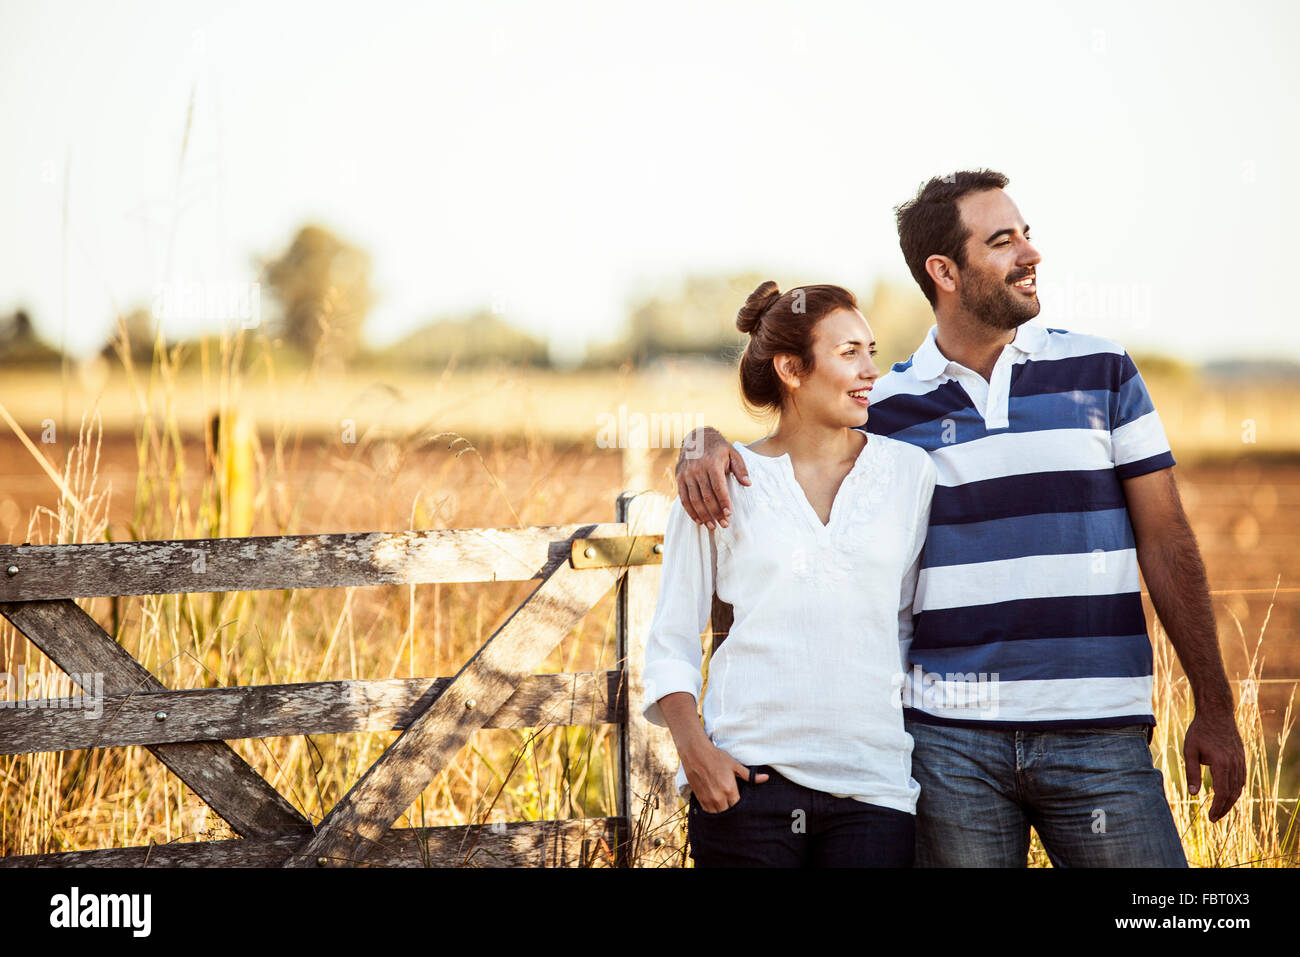 Couple admiring view of countryside Stock Photo